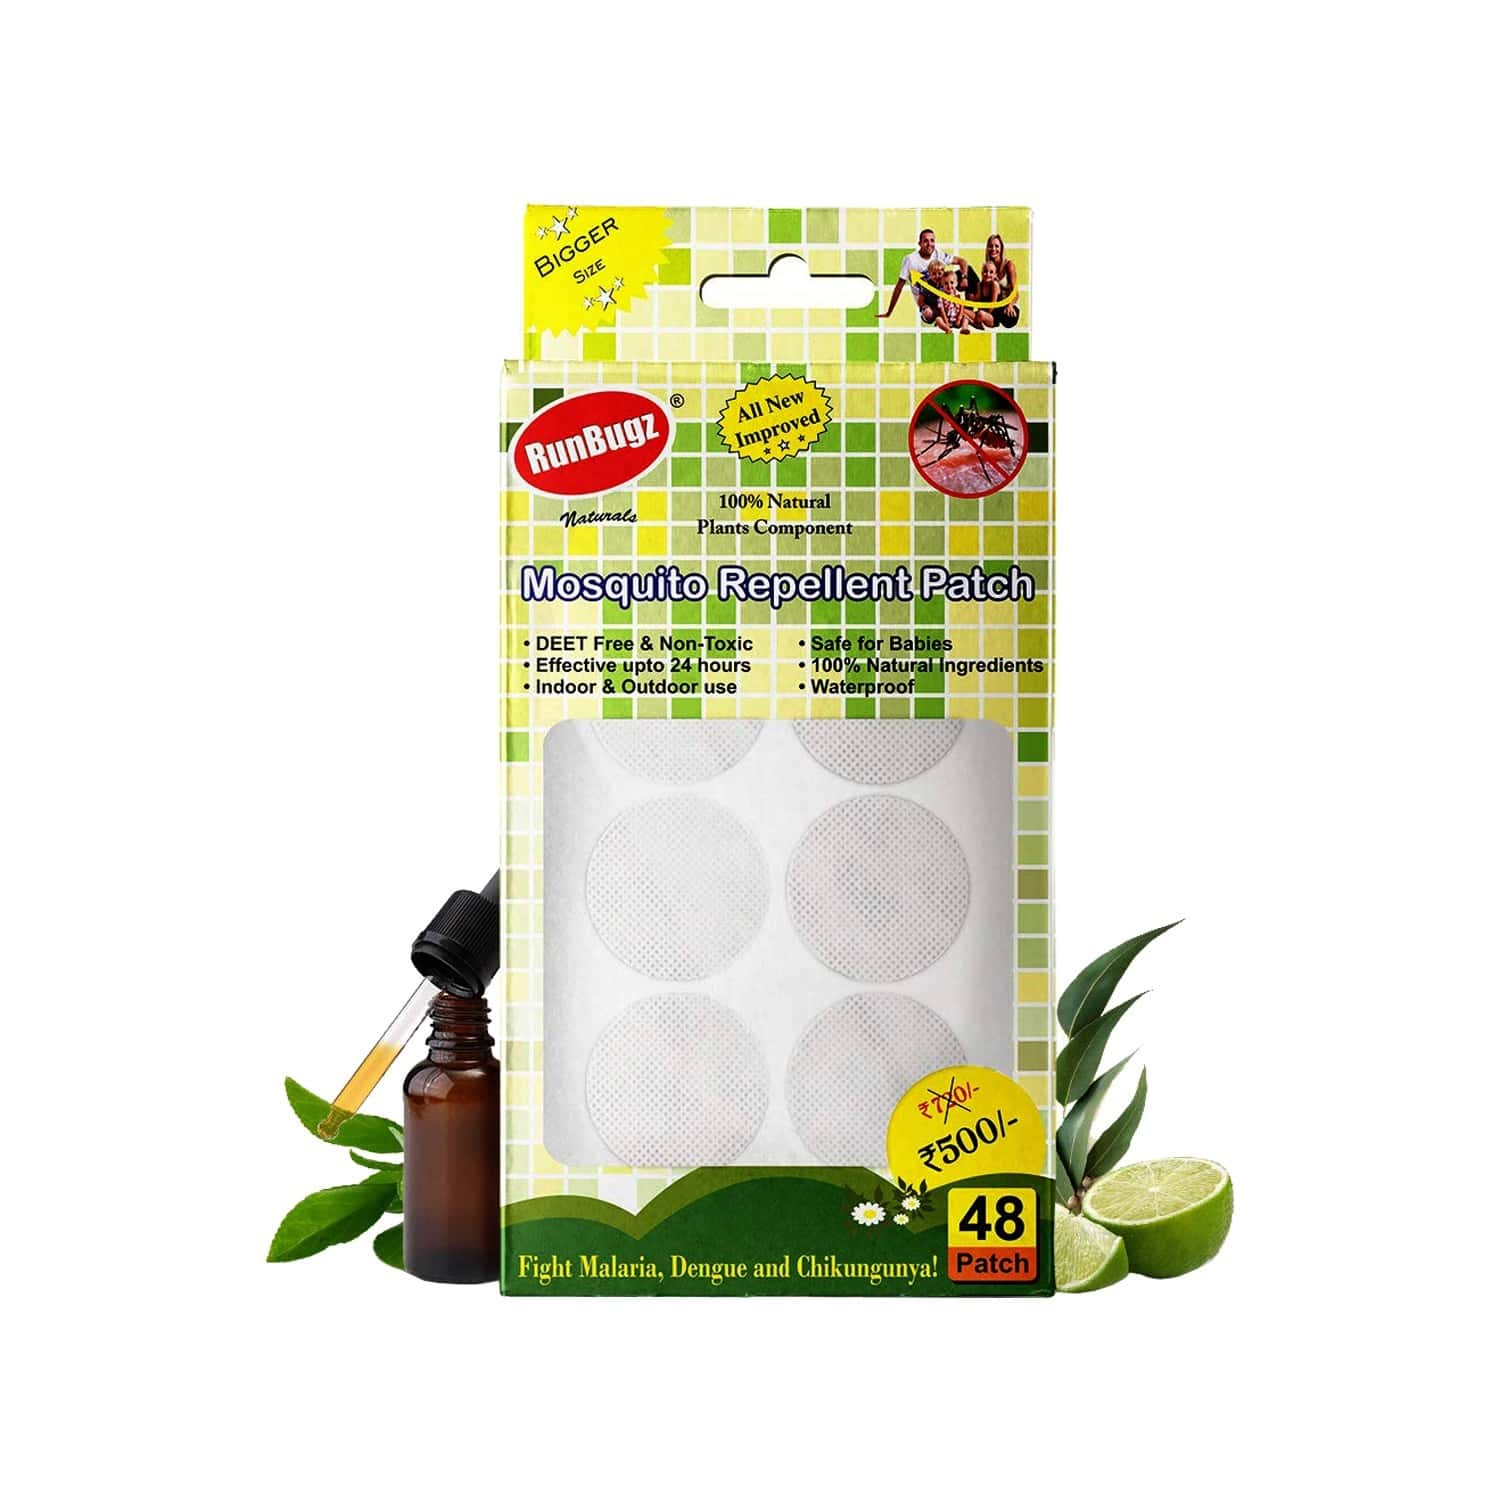 Runbugz Mosquito Repellent Patches (pack Of 48)- White